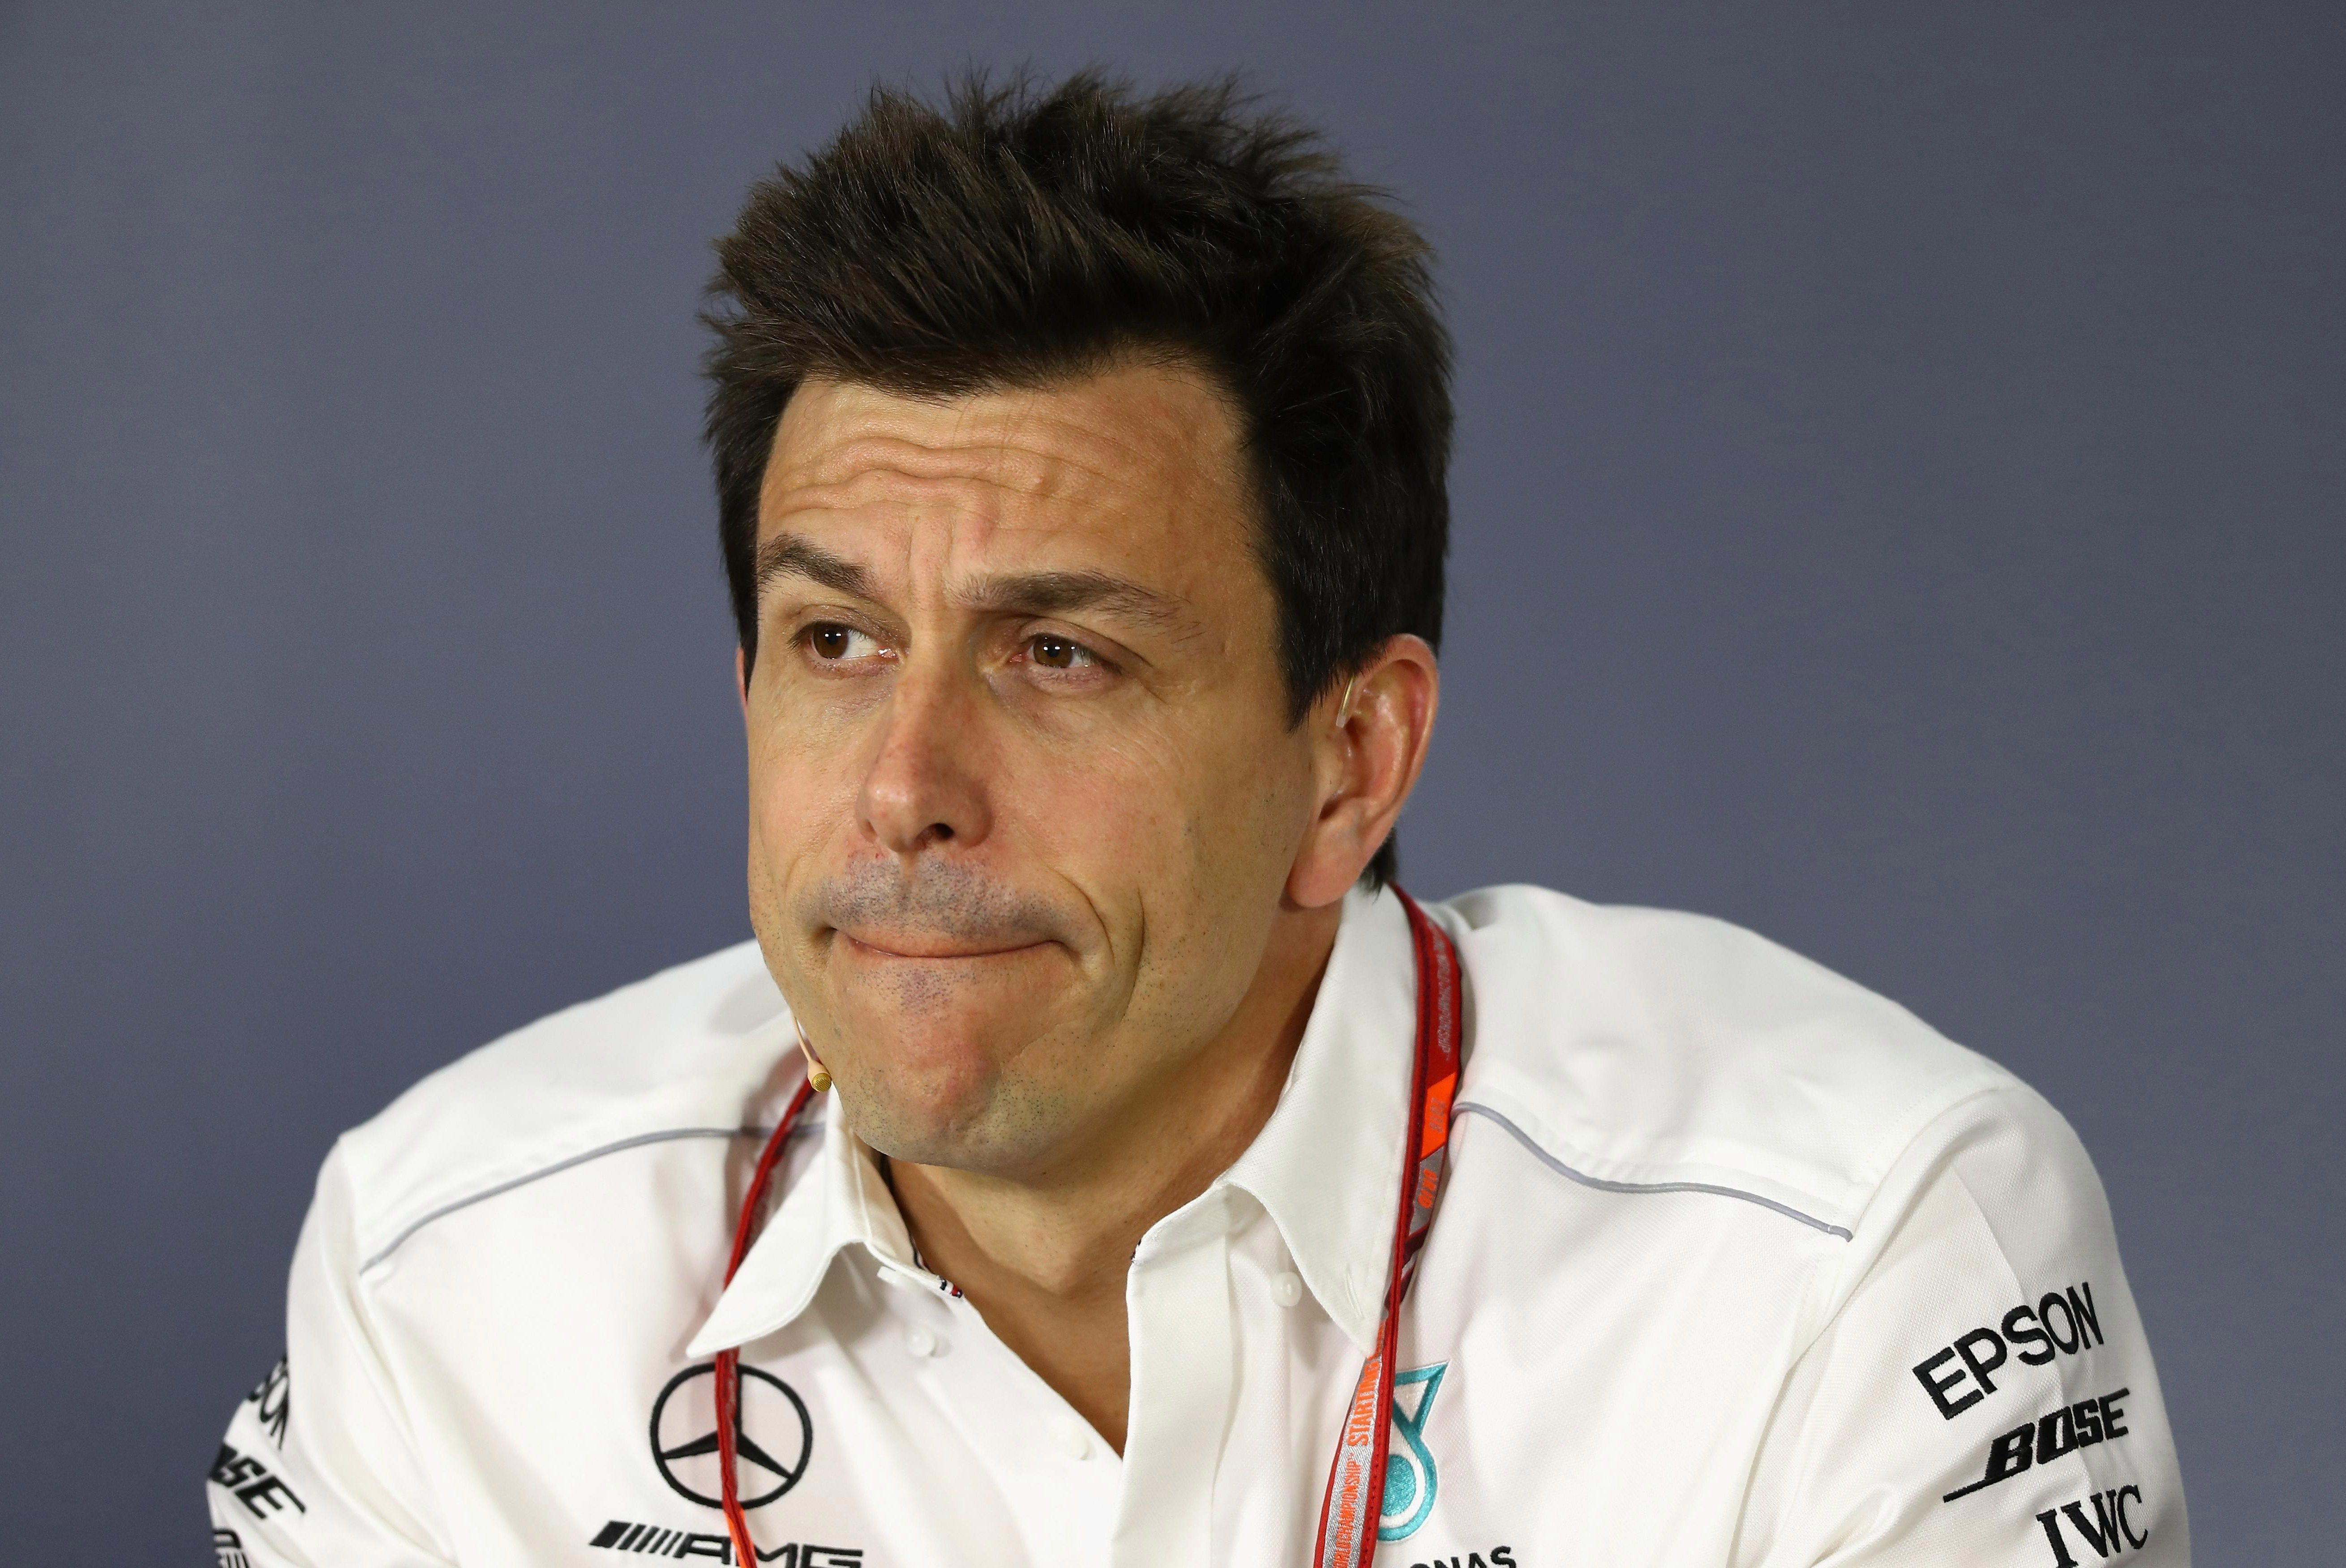 Mercedes boss Toto Wolff thought Hamilton's lead was enough until he saw him coming out of the pits